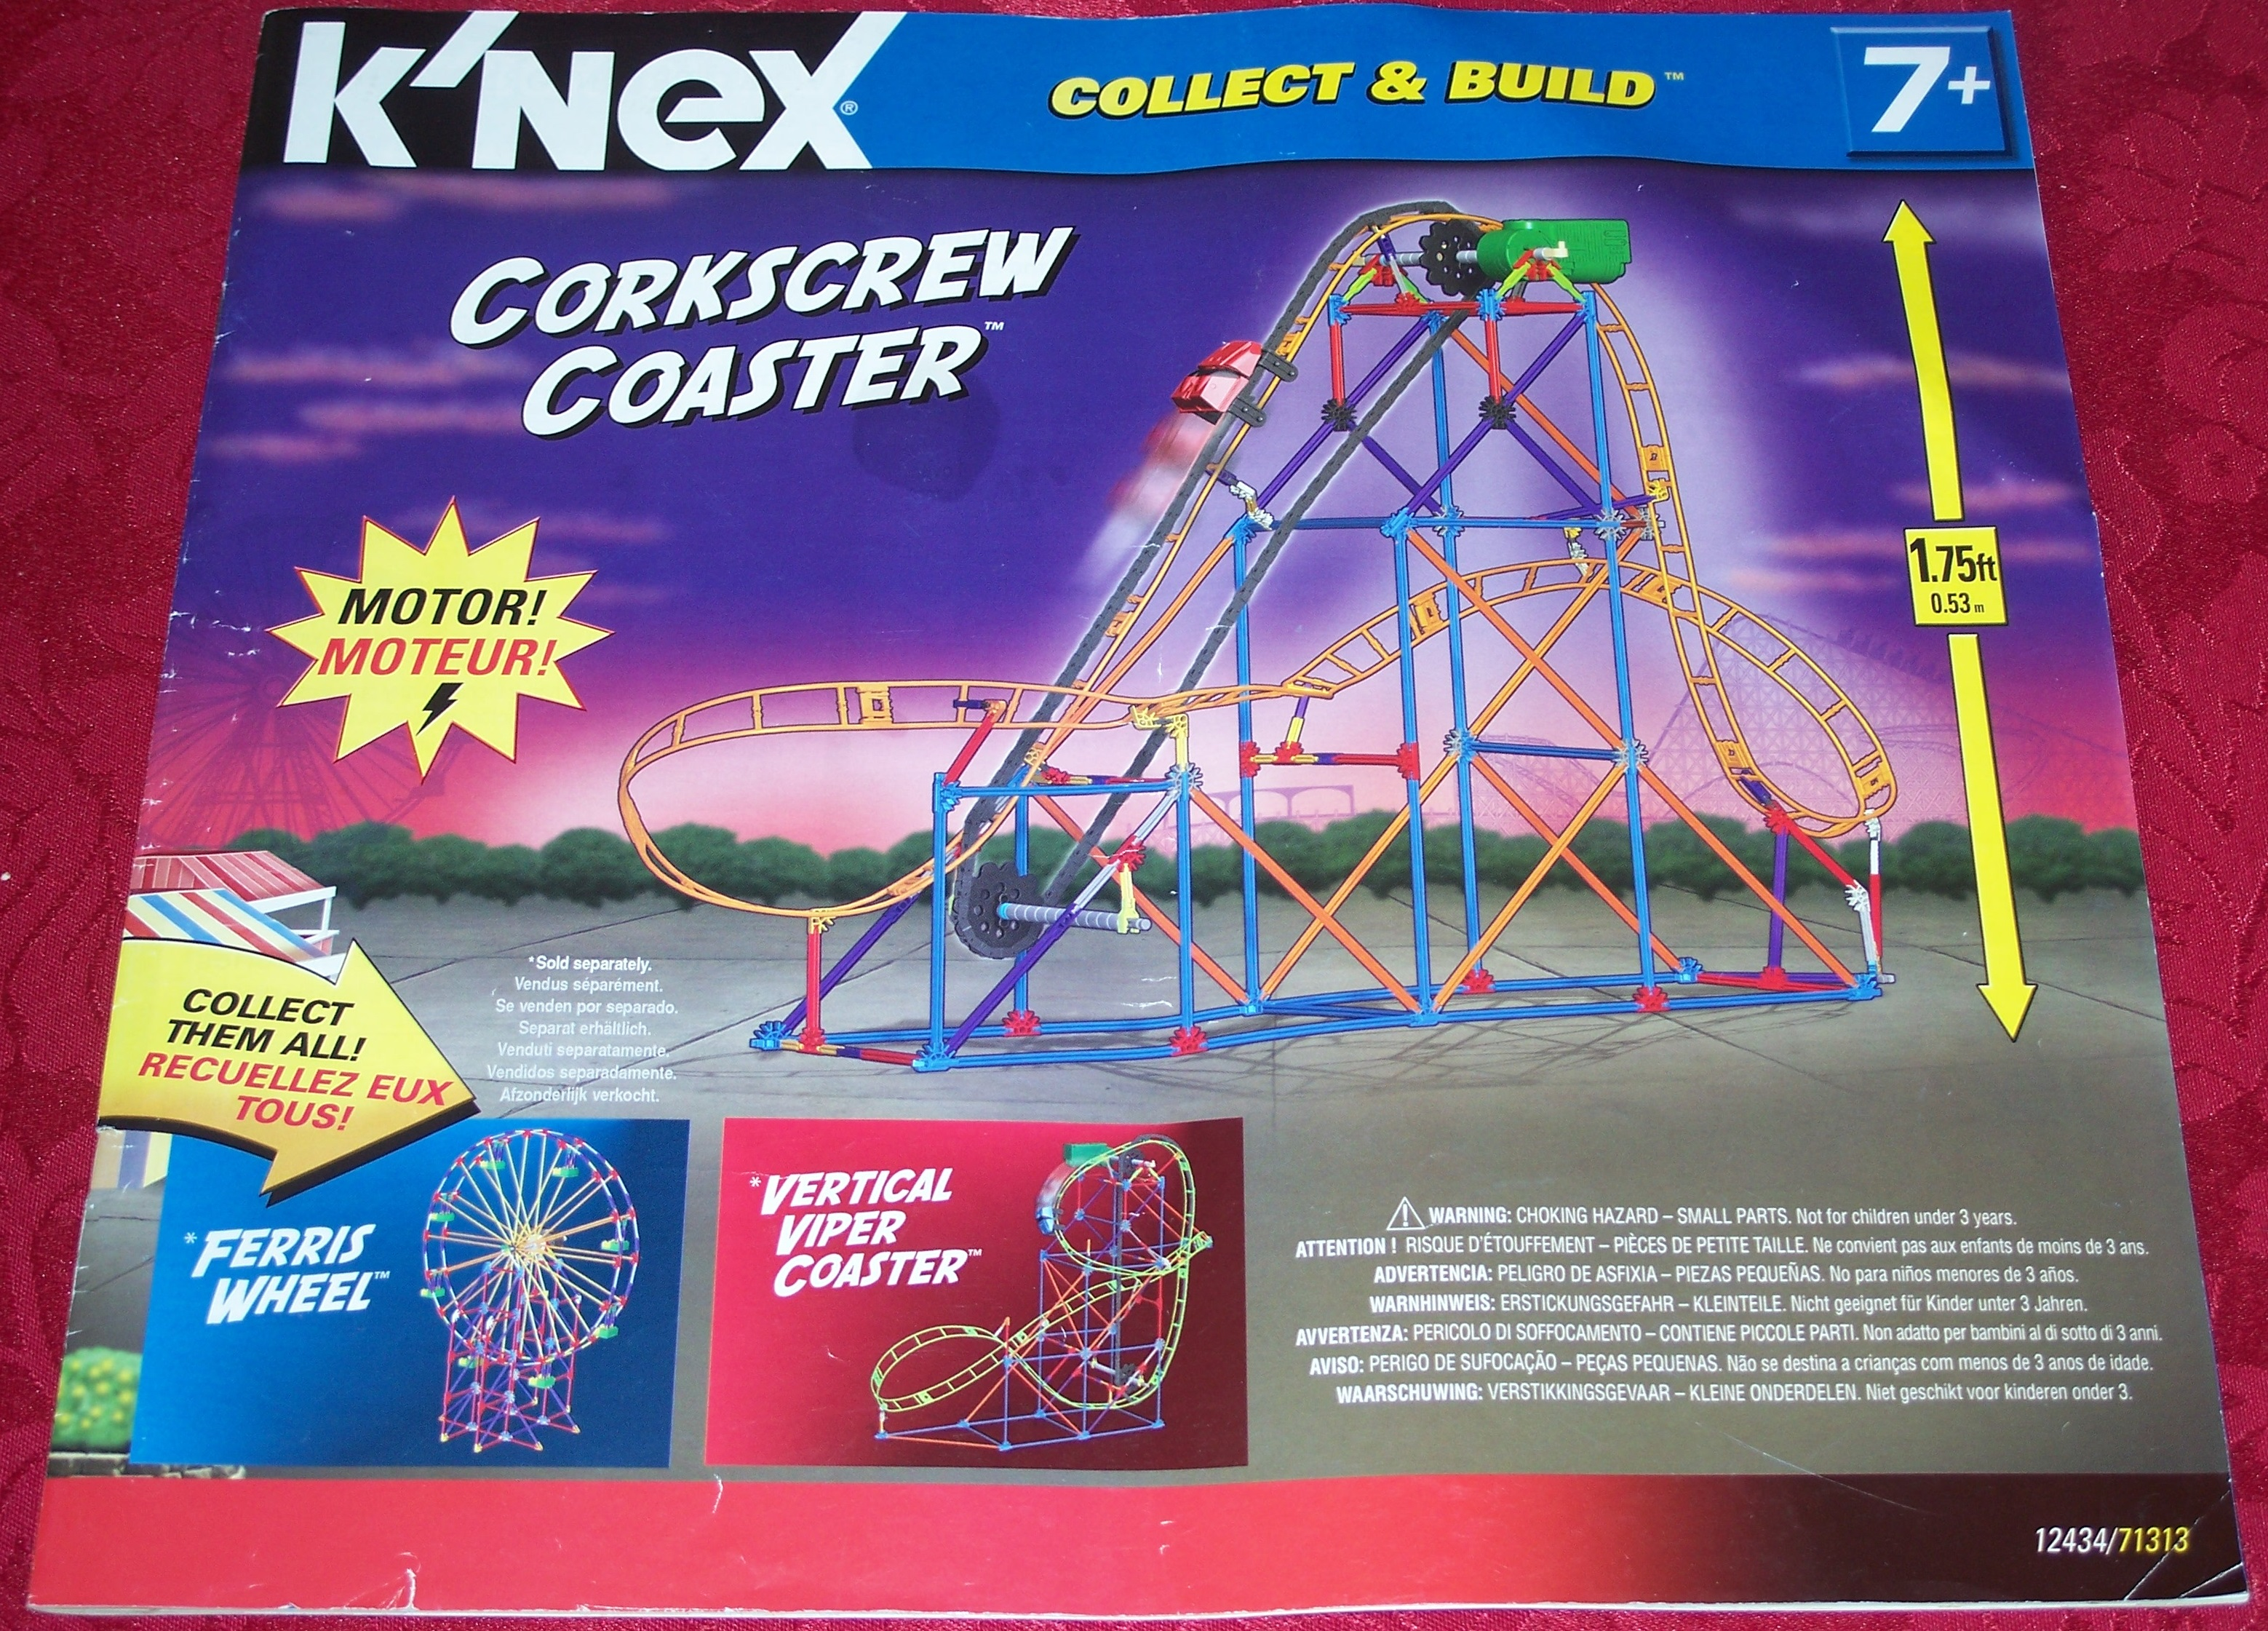 Instruction Book Collect & Build Corkscrew Coaster 12434/71313 - Click Image to Close